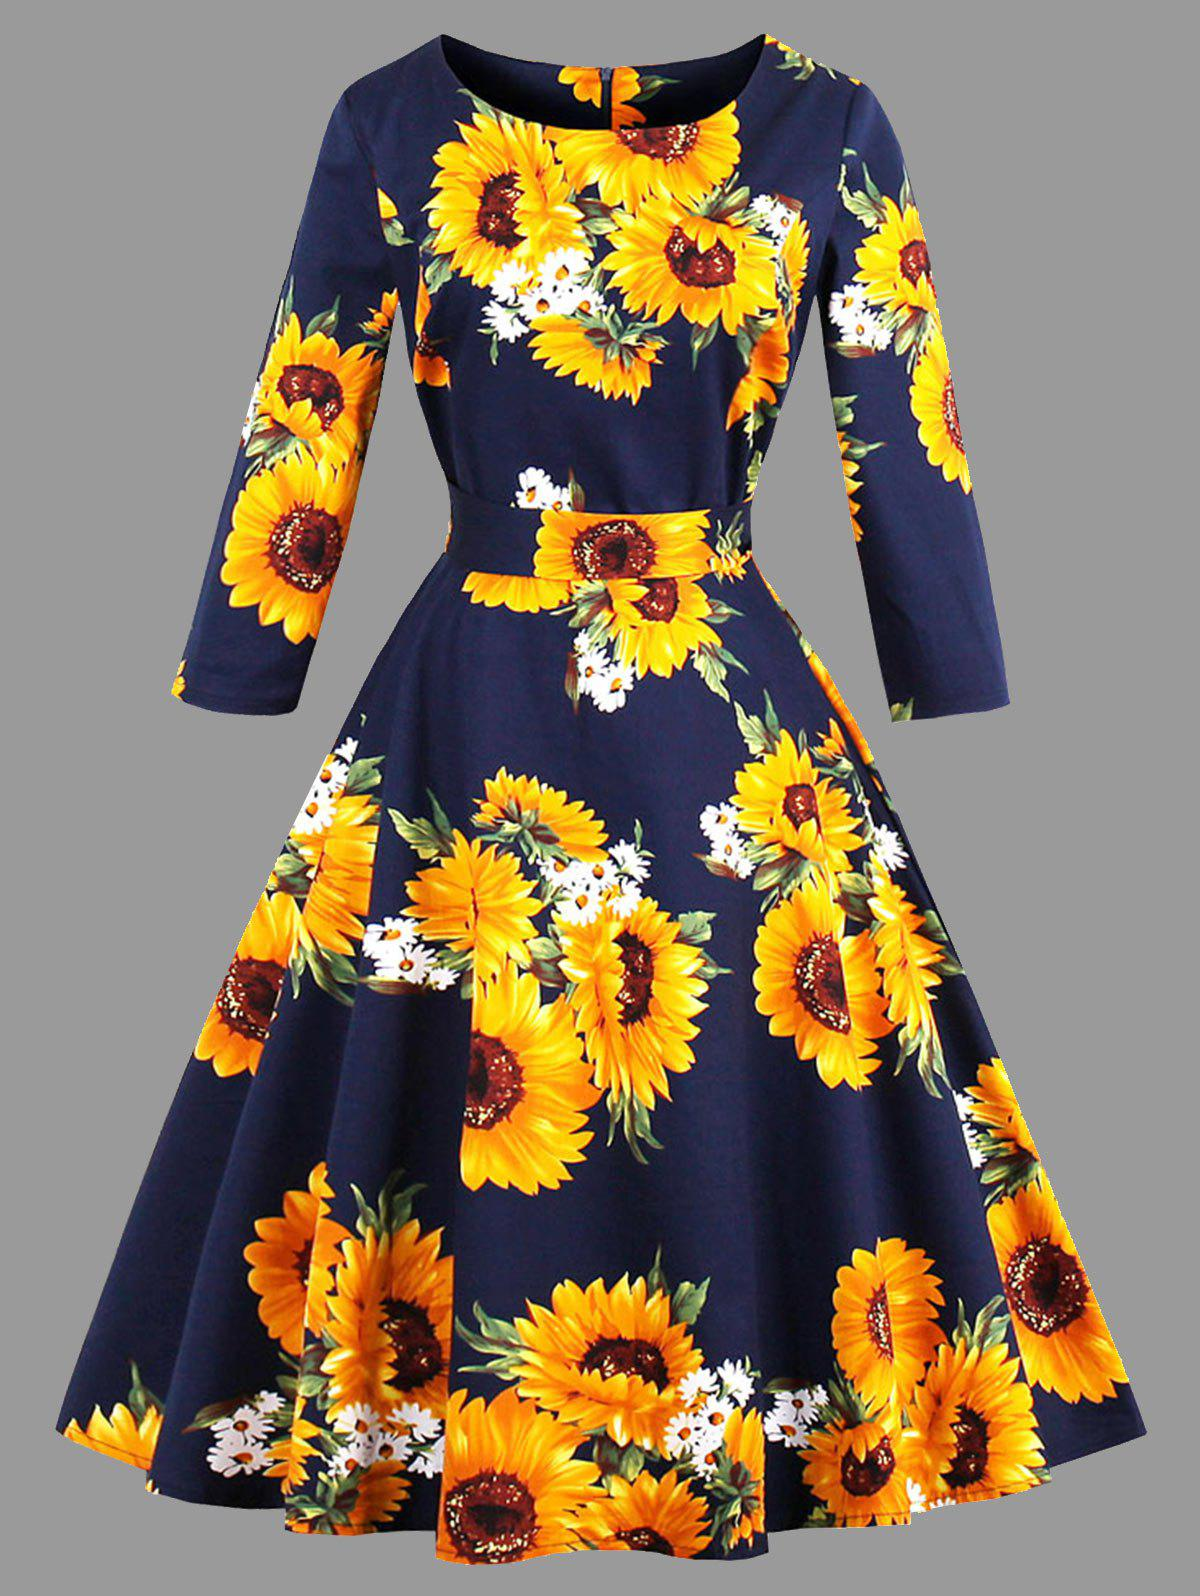 Plus Size Belted Sunflower Print DressWOMEN<br><br>Size: 4XL; Color: PURPLISH BLUE; Style: Vintage; Material: Cotton,Polyester; Silhouette: A-Line; Dresses Length: Knee-Length; Neckline: Round Collar; Sleeve Length: 3/4 Length Sleeves; Pattern Type: Floral; With Belt: Yes; Season: Fall; Weight: 0.4350kg; Package Contents: 1 x Dress  1 x Belt;